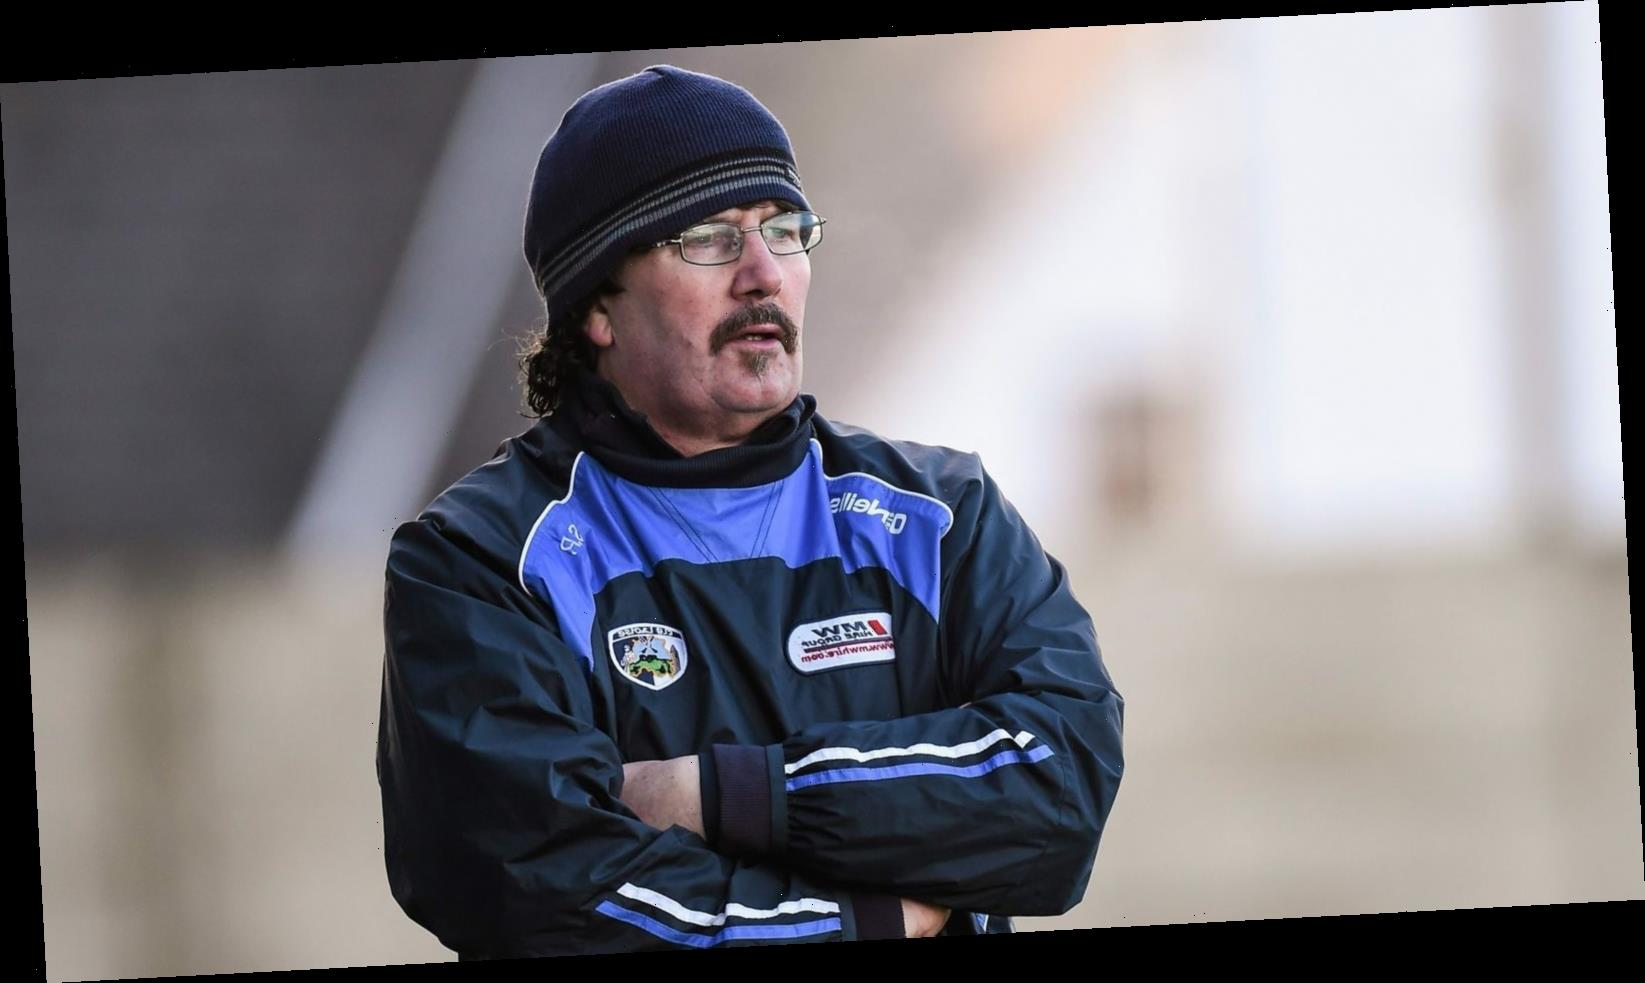 Laois re-appoint Seamus 'Cheddar' Plunkett as senior hurling manager